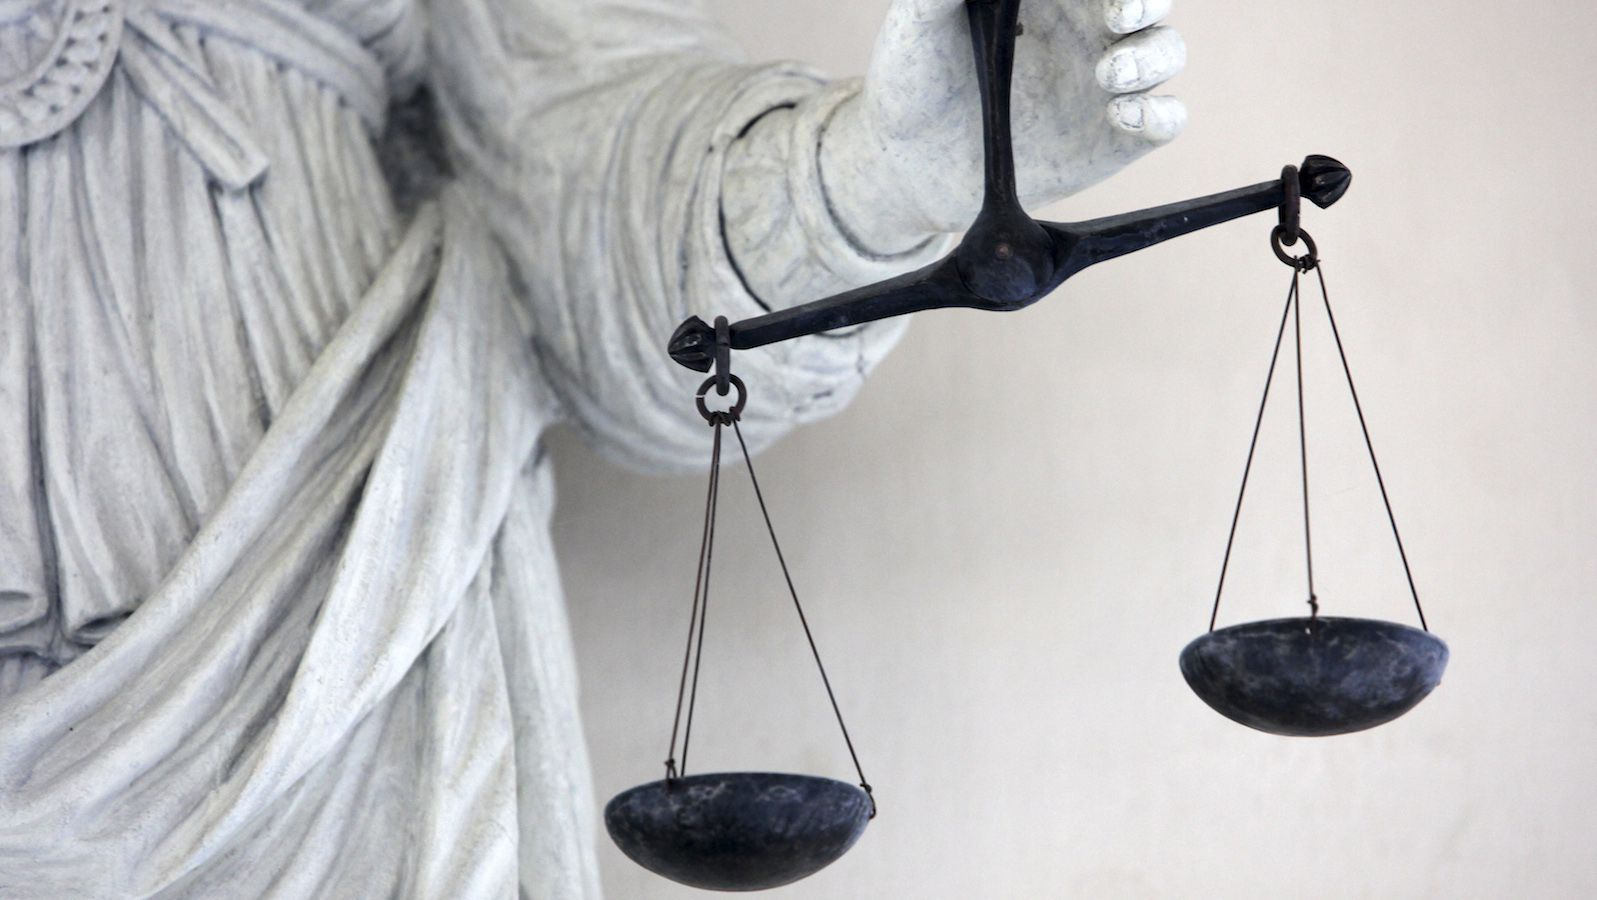 Scales of Justice are seen in Brittany's Parliament, during the trial concerning victims of the Queen Mary 2 accident, in Rennes western France April 2, 2009.